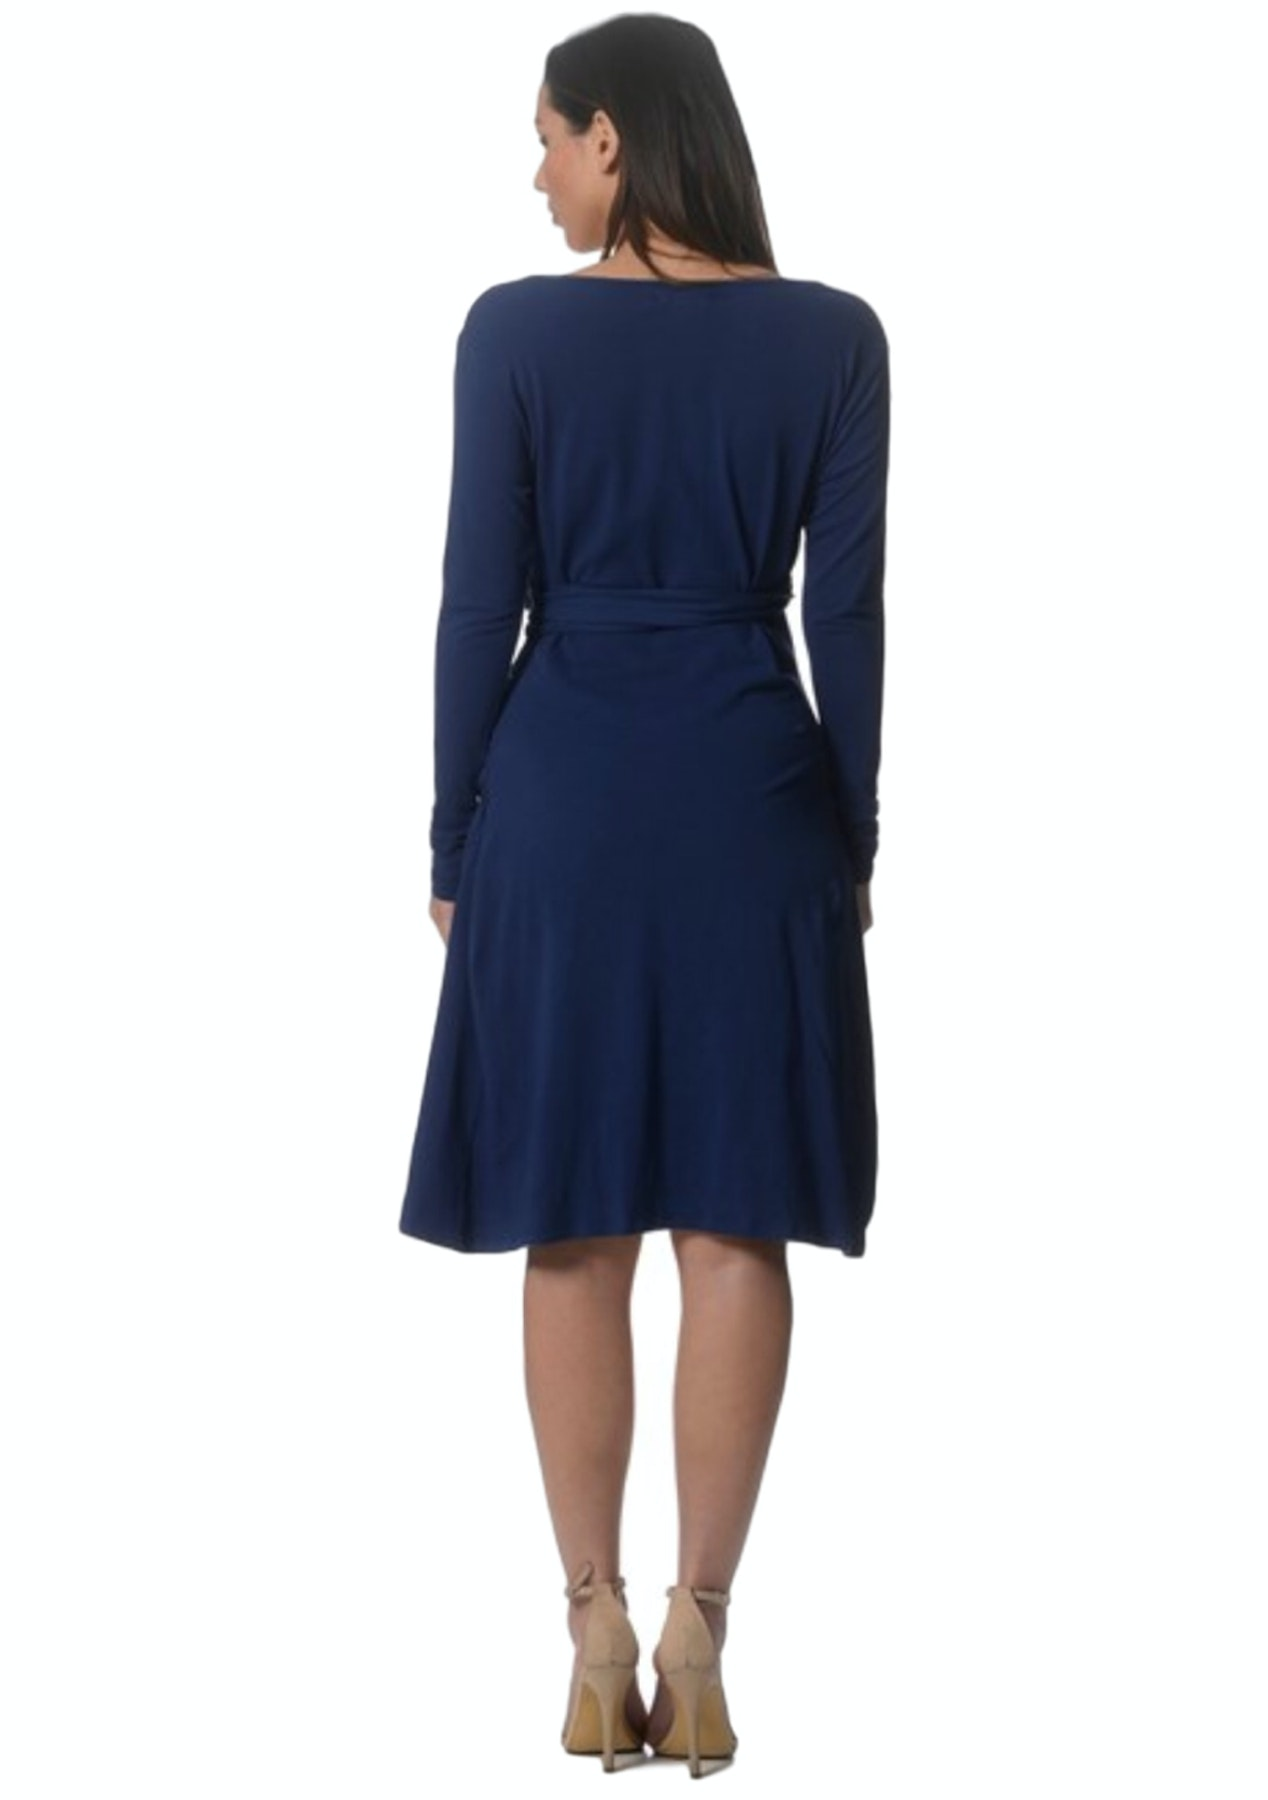 7cc8e296a9d73 Maternity Clothes Online - Lilly & Me Cotton Wrap Dress With Side Ruching -  Blue - The Maternity Shop - Onceit